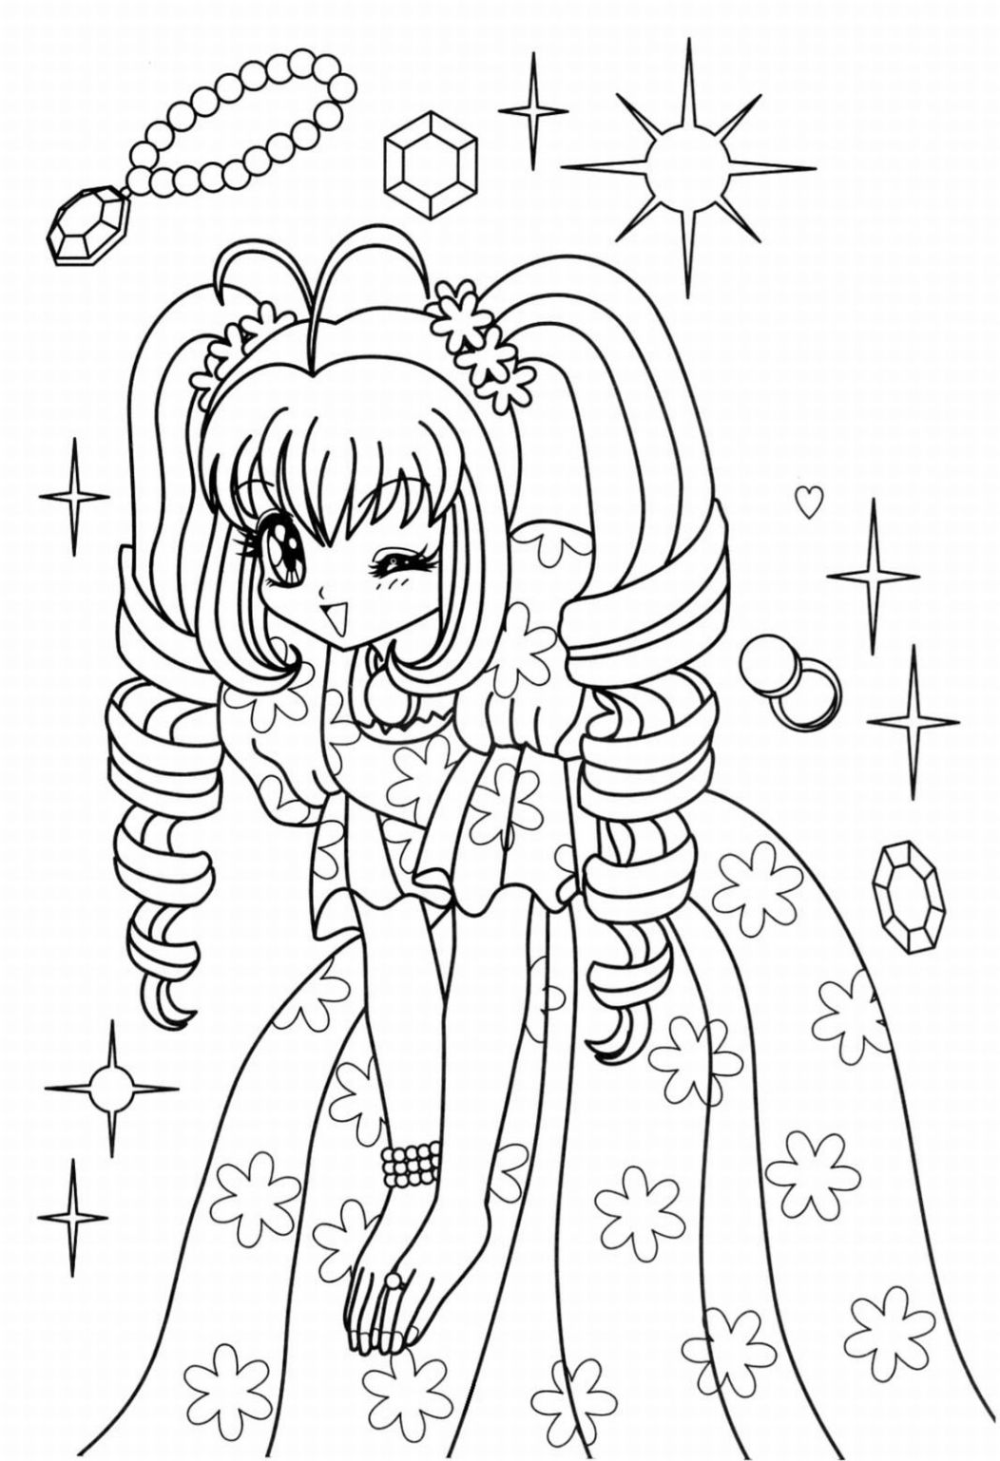 Anime Christmas Coloring Pages Get Coloring Pages Cartoon Coloring Pages Puppy Coloring Pages Coloring Pages